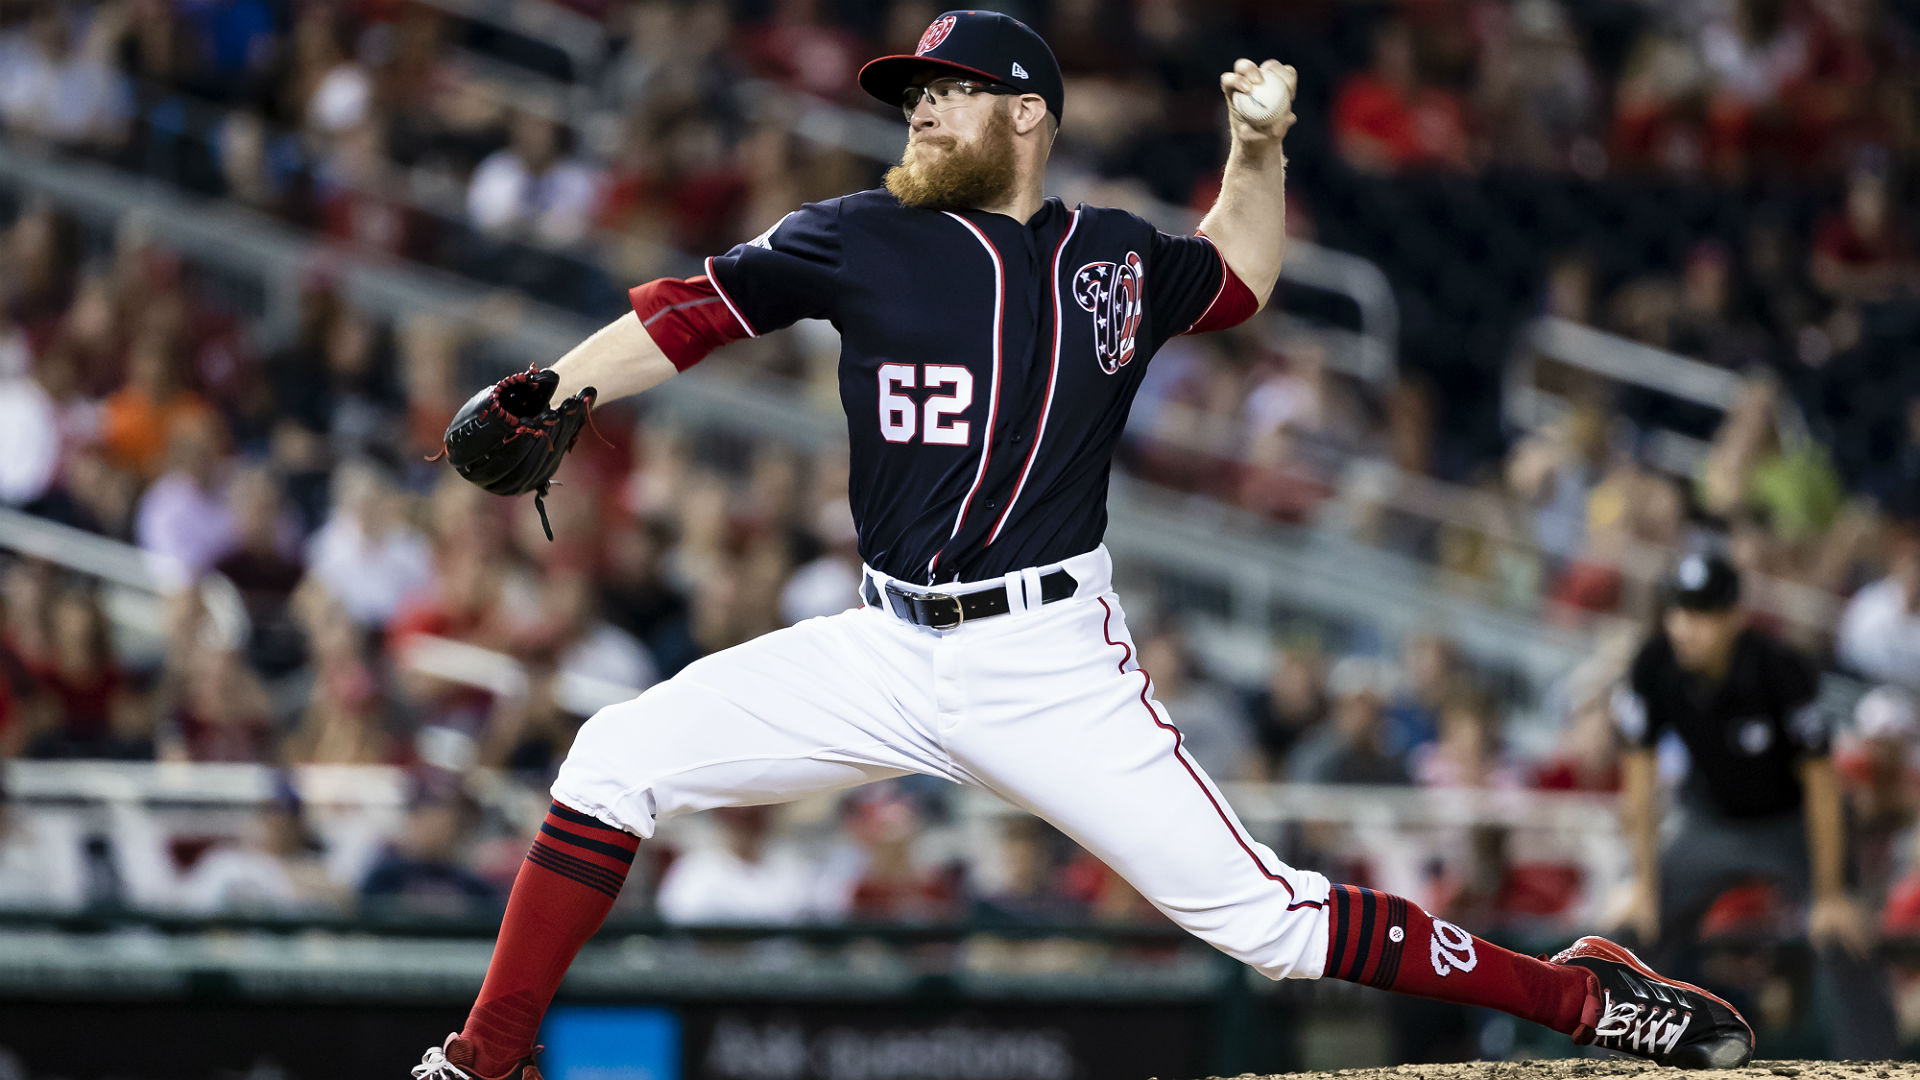 Sean Doolittle injury update: Nationals closer placed on DL, will miss All-Star Game